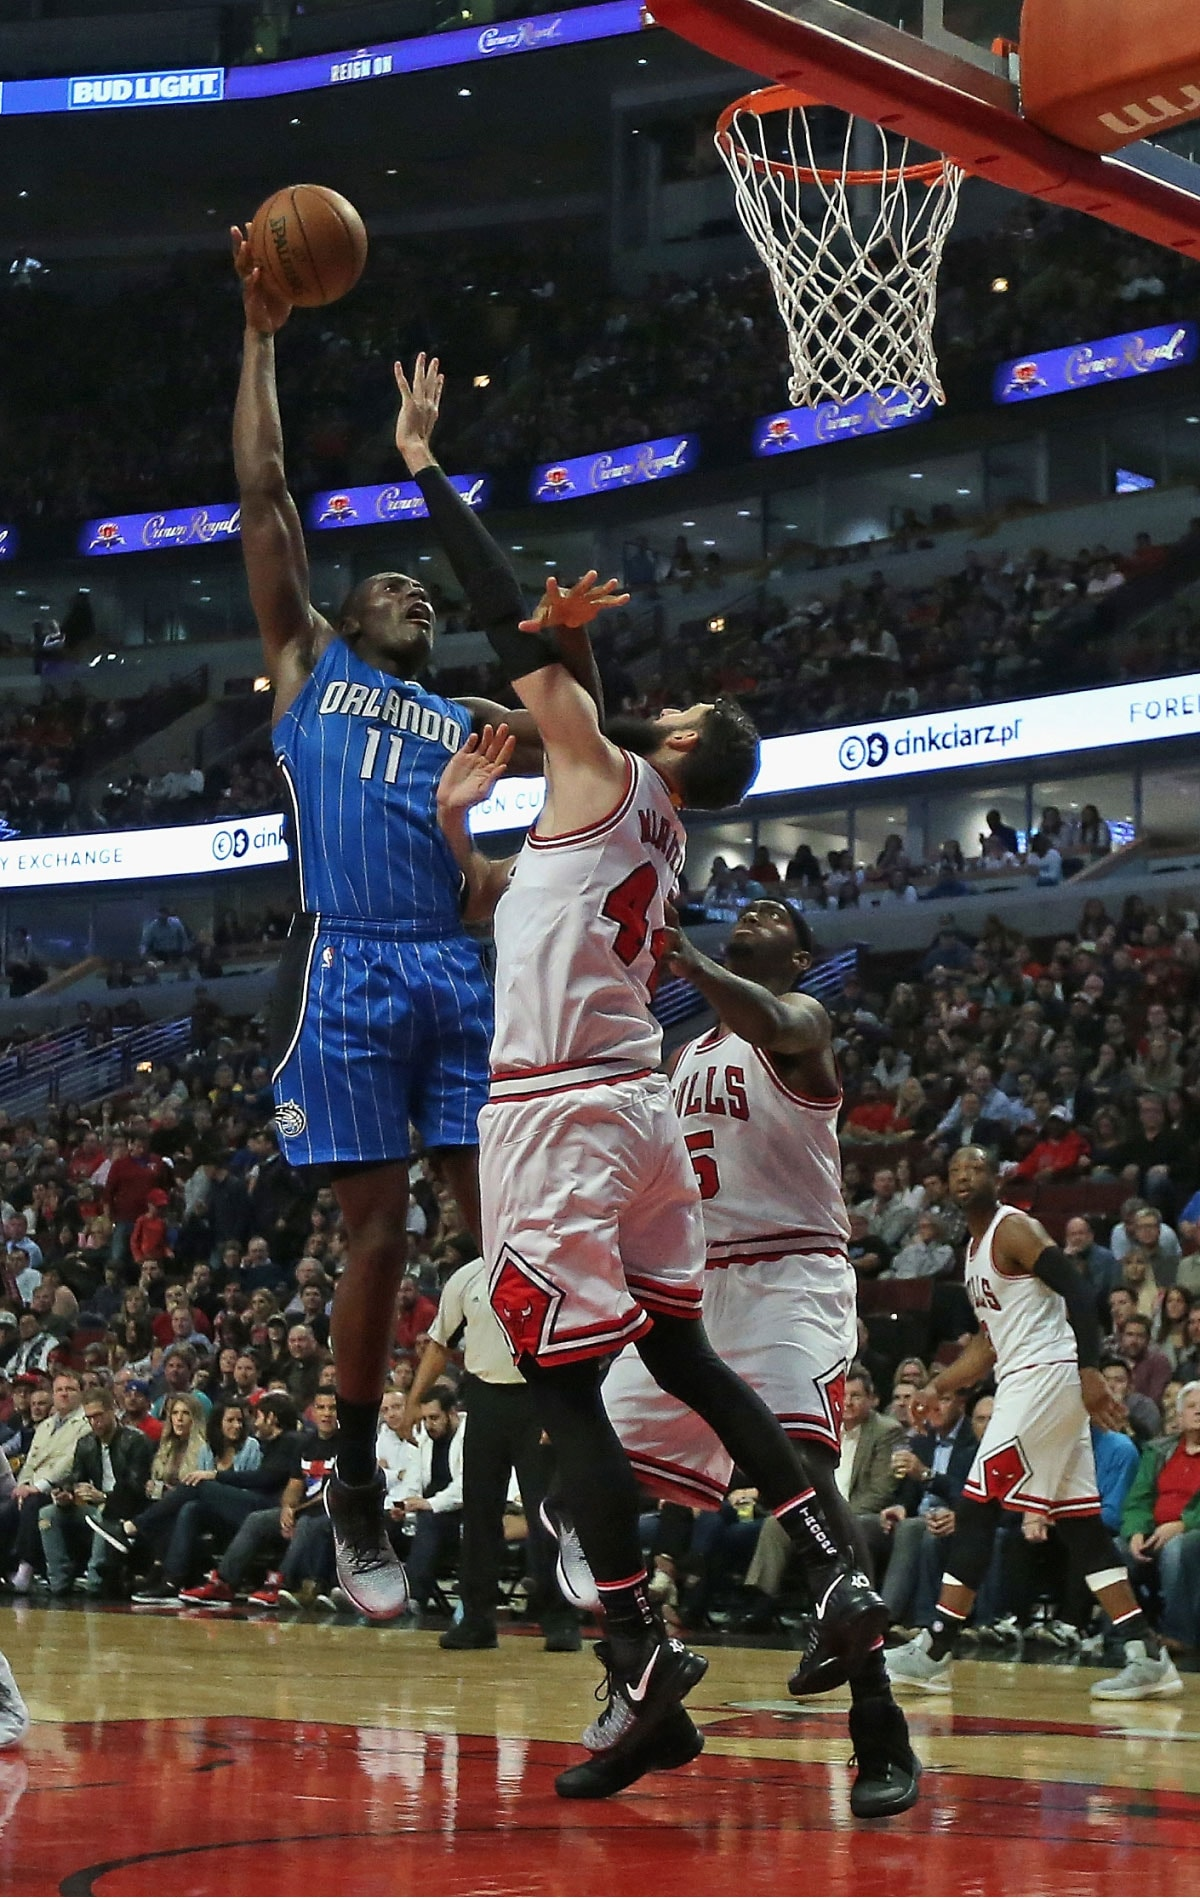 Bismack Biyombo #11 of the Orlando Magic shoots over Nikola Mirotic #44 and Bobby Portis #5 of the Chicago Bulls at the United Center on November 7, 2016 in Chicago, Illinois.